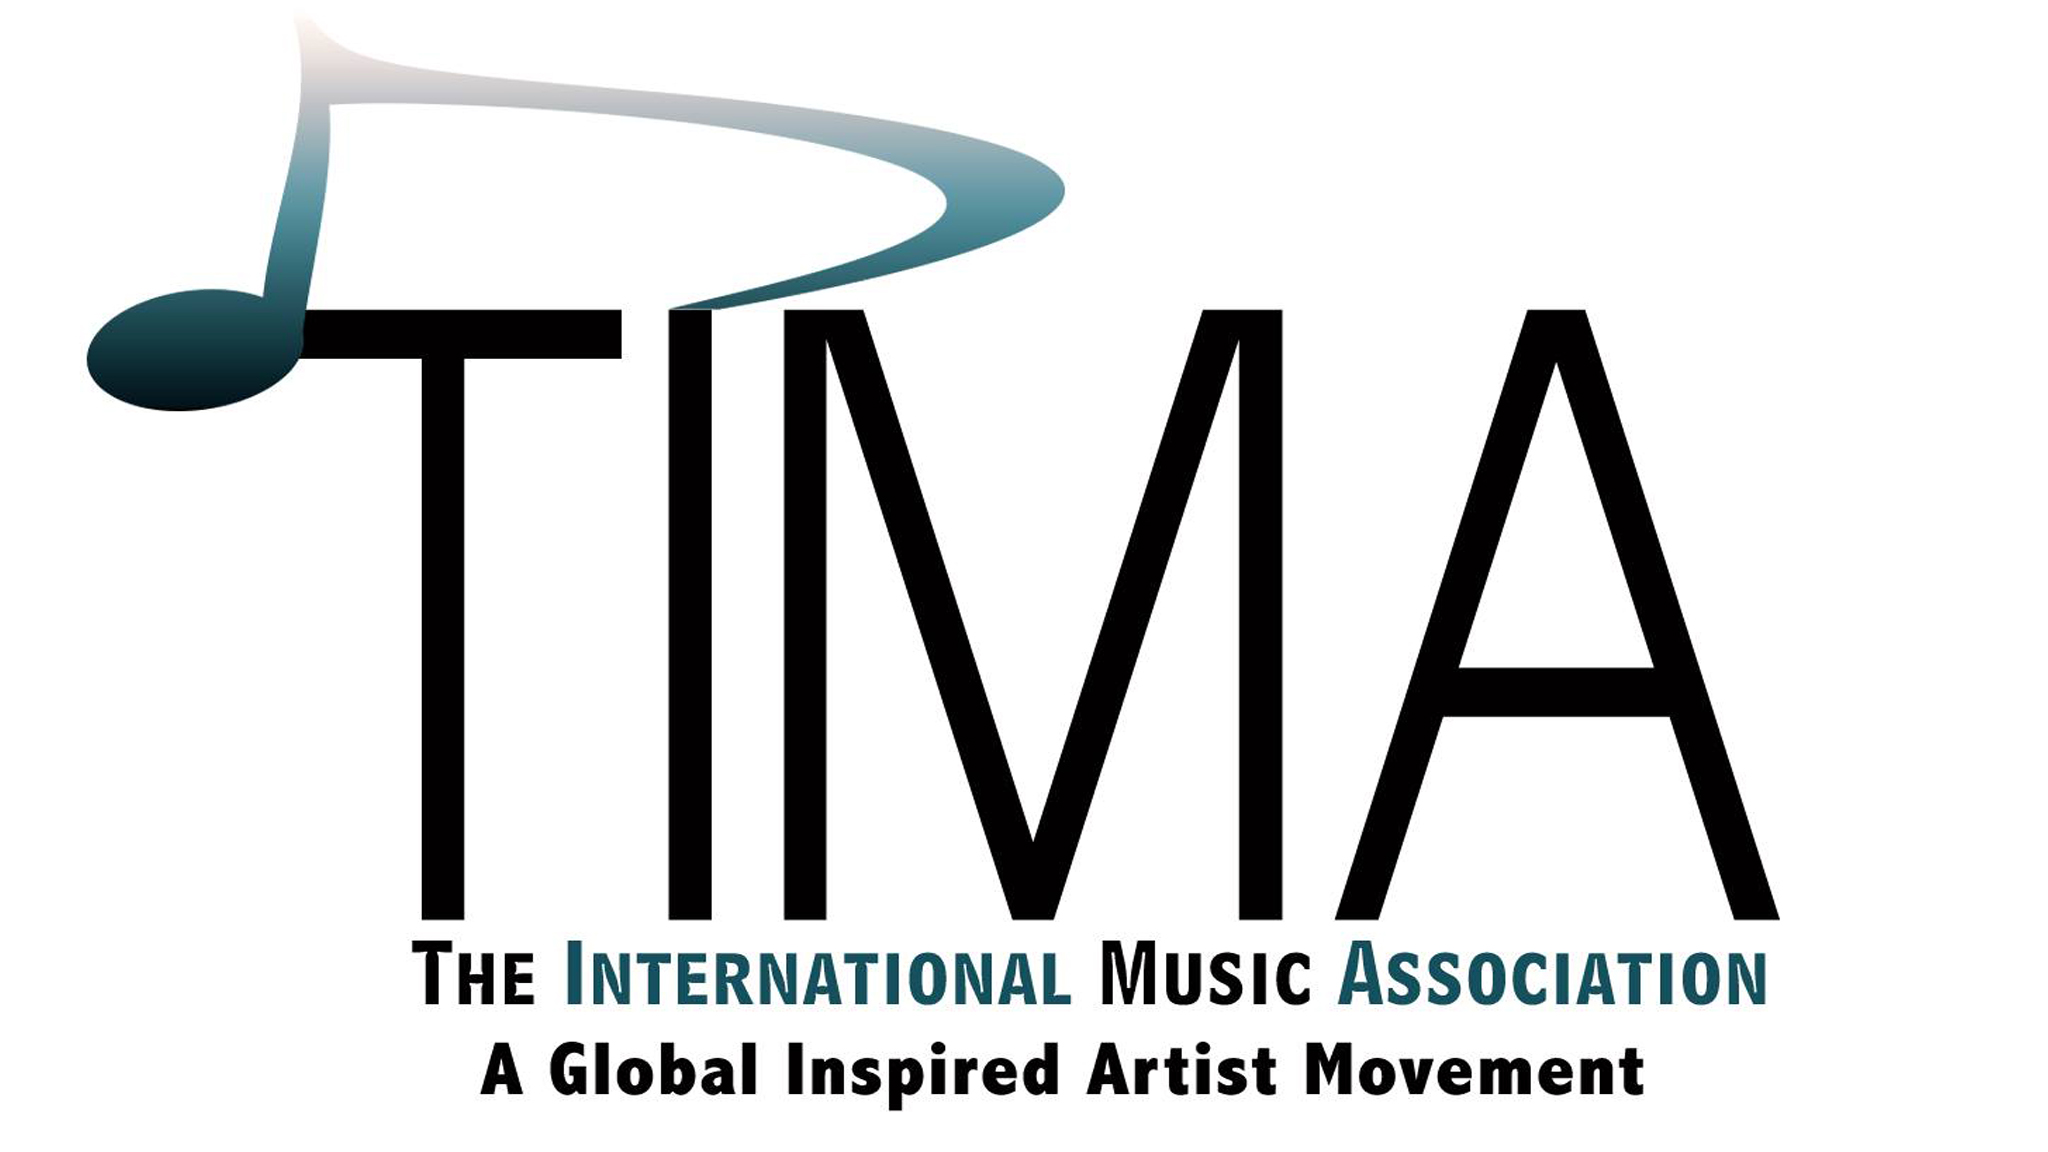 The International Music Association (TIMA) - Black Owned